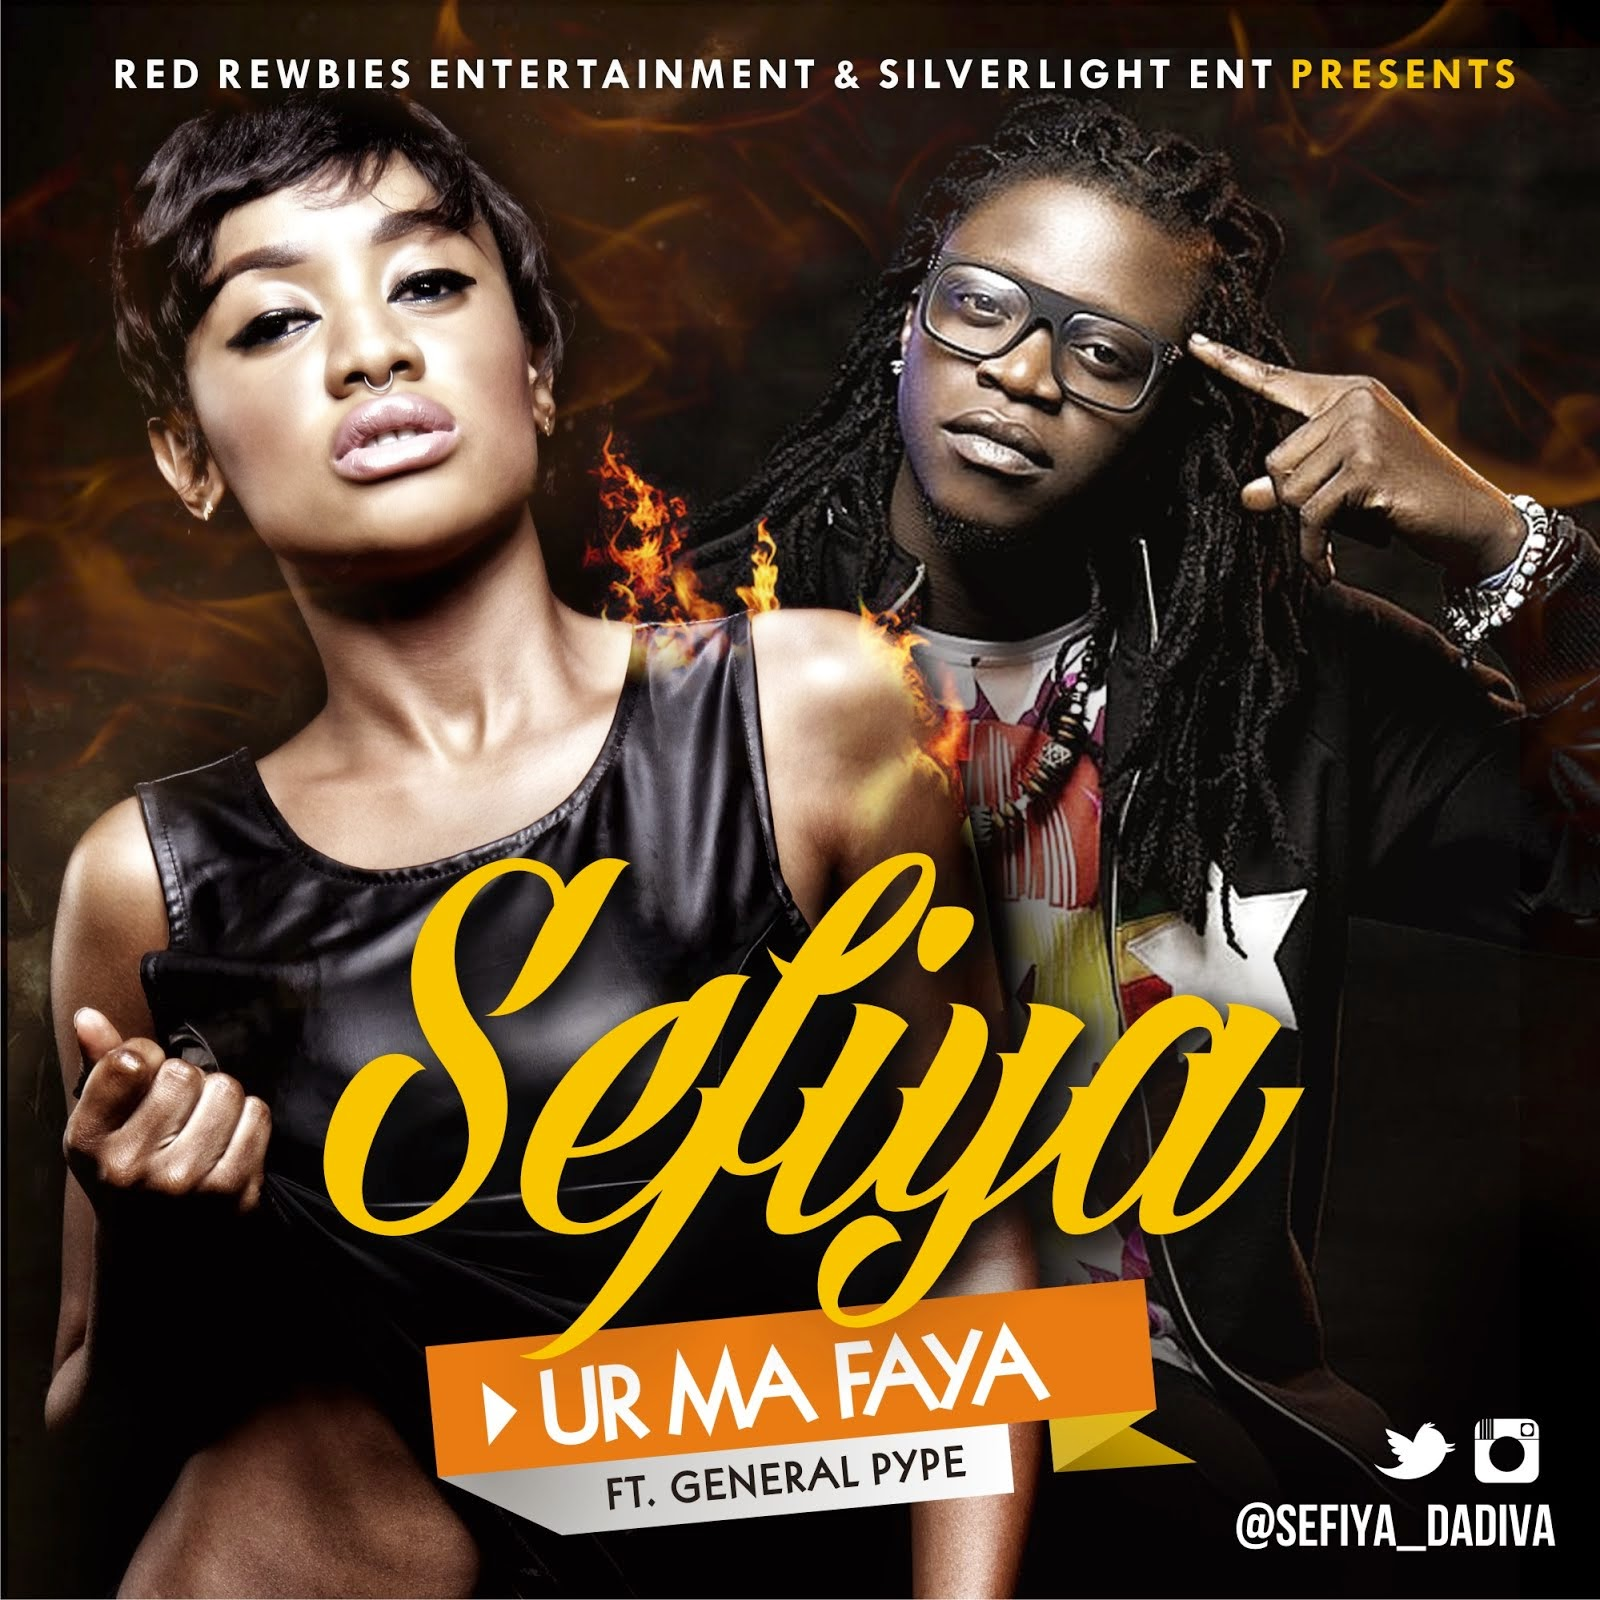 SEFIYA ft GENERAL PYPE (UR MA FAYA)